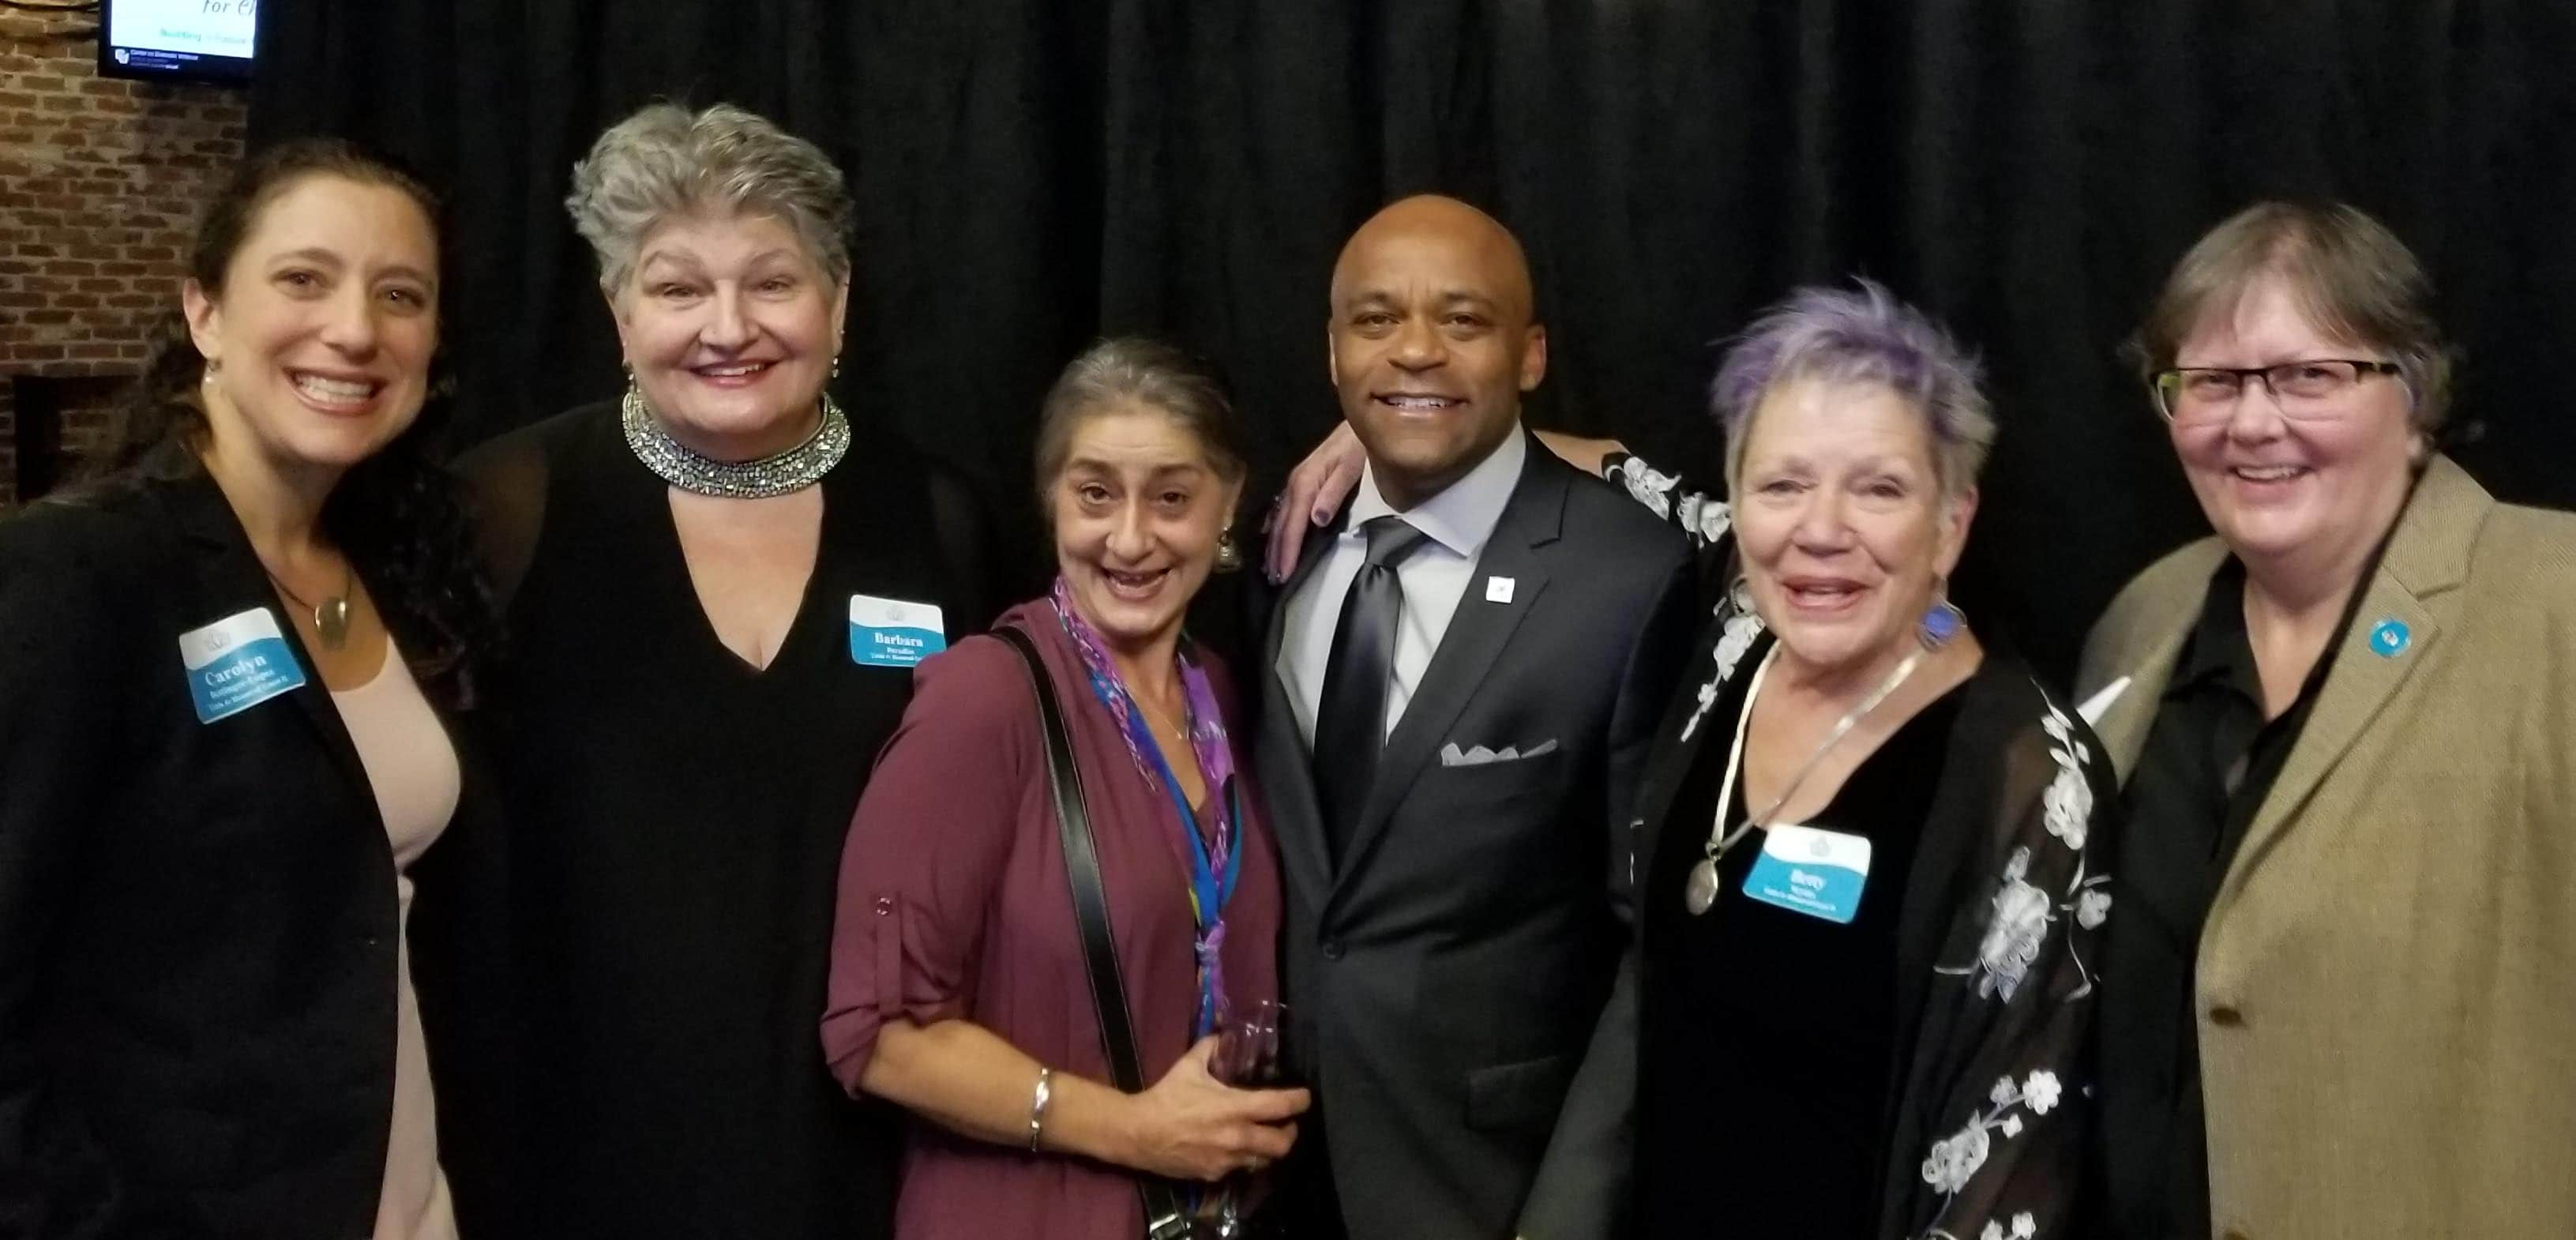 Group photo of honored guests at Champions for Change event